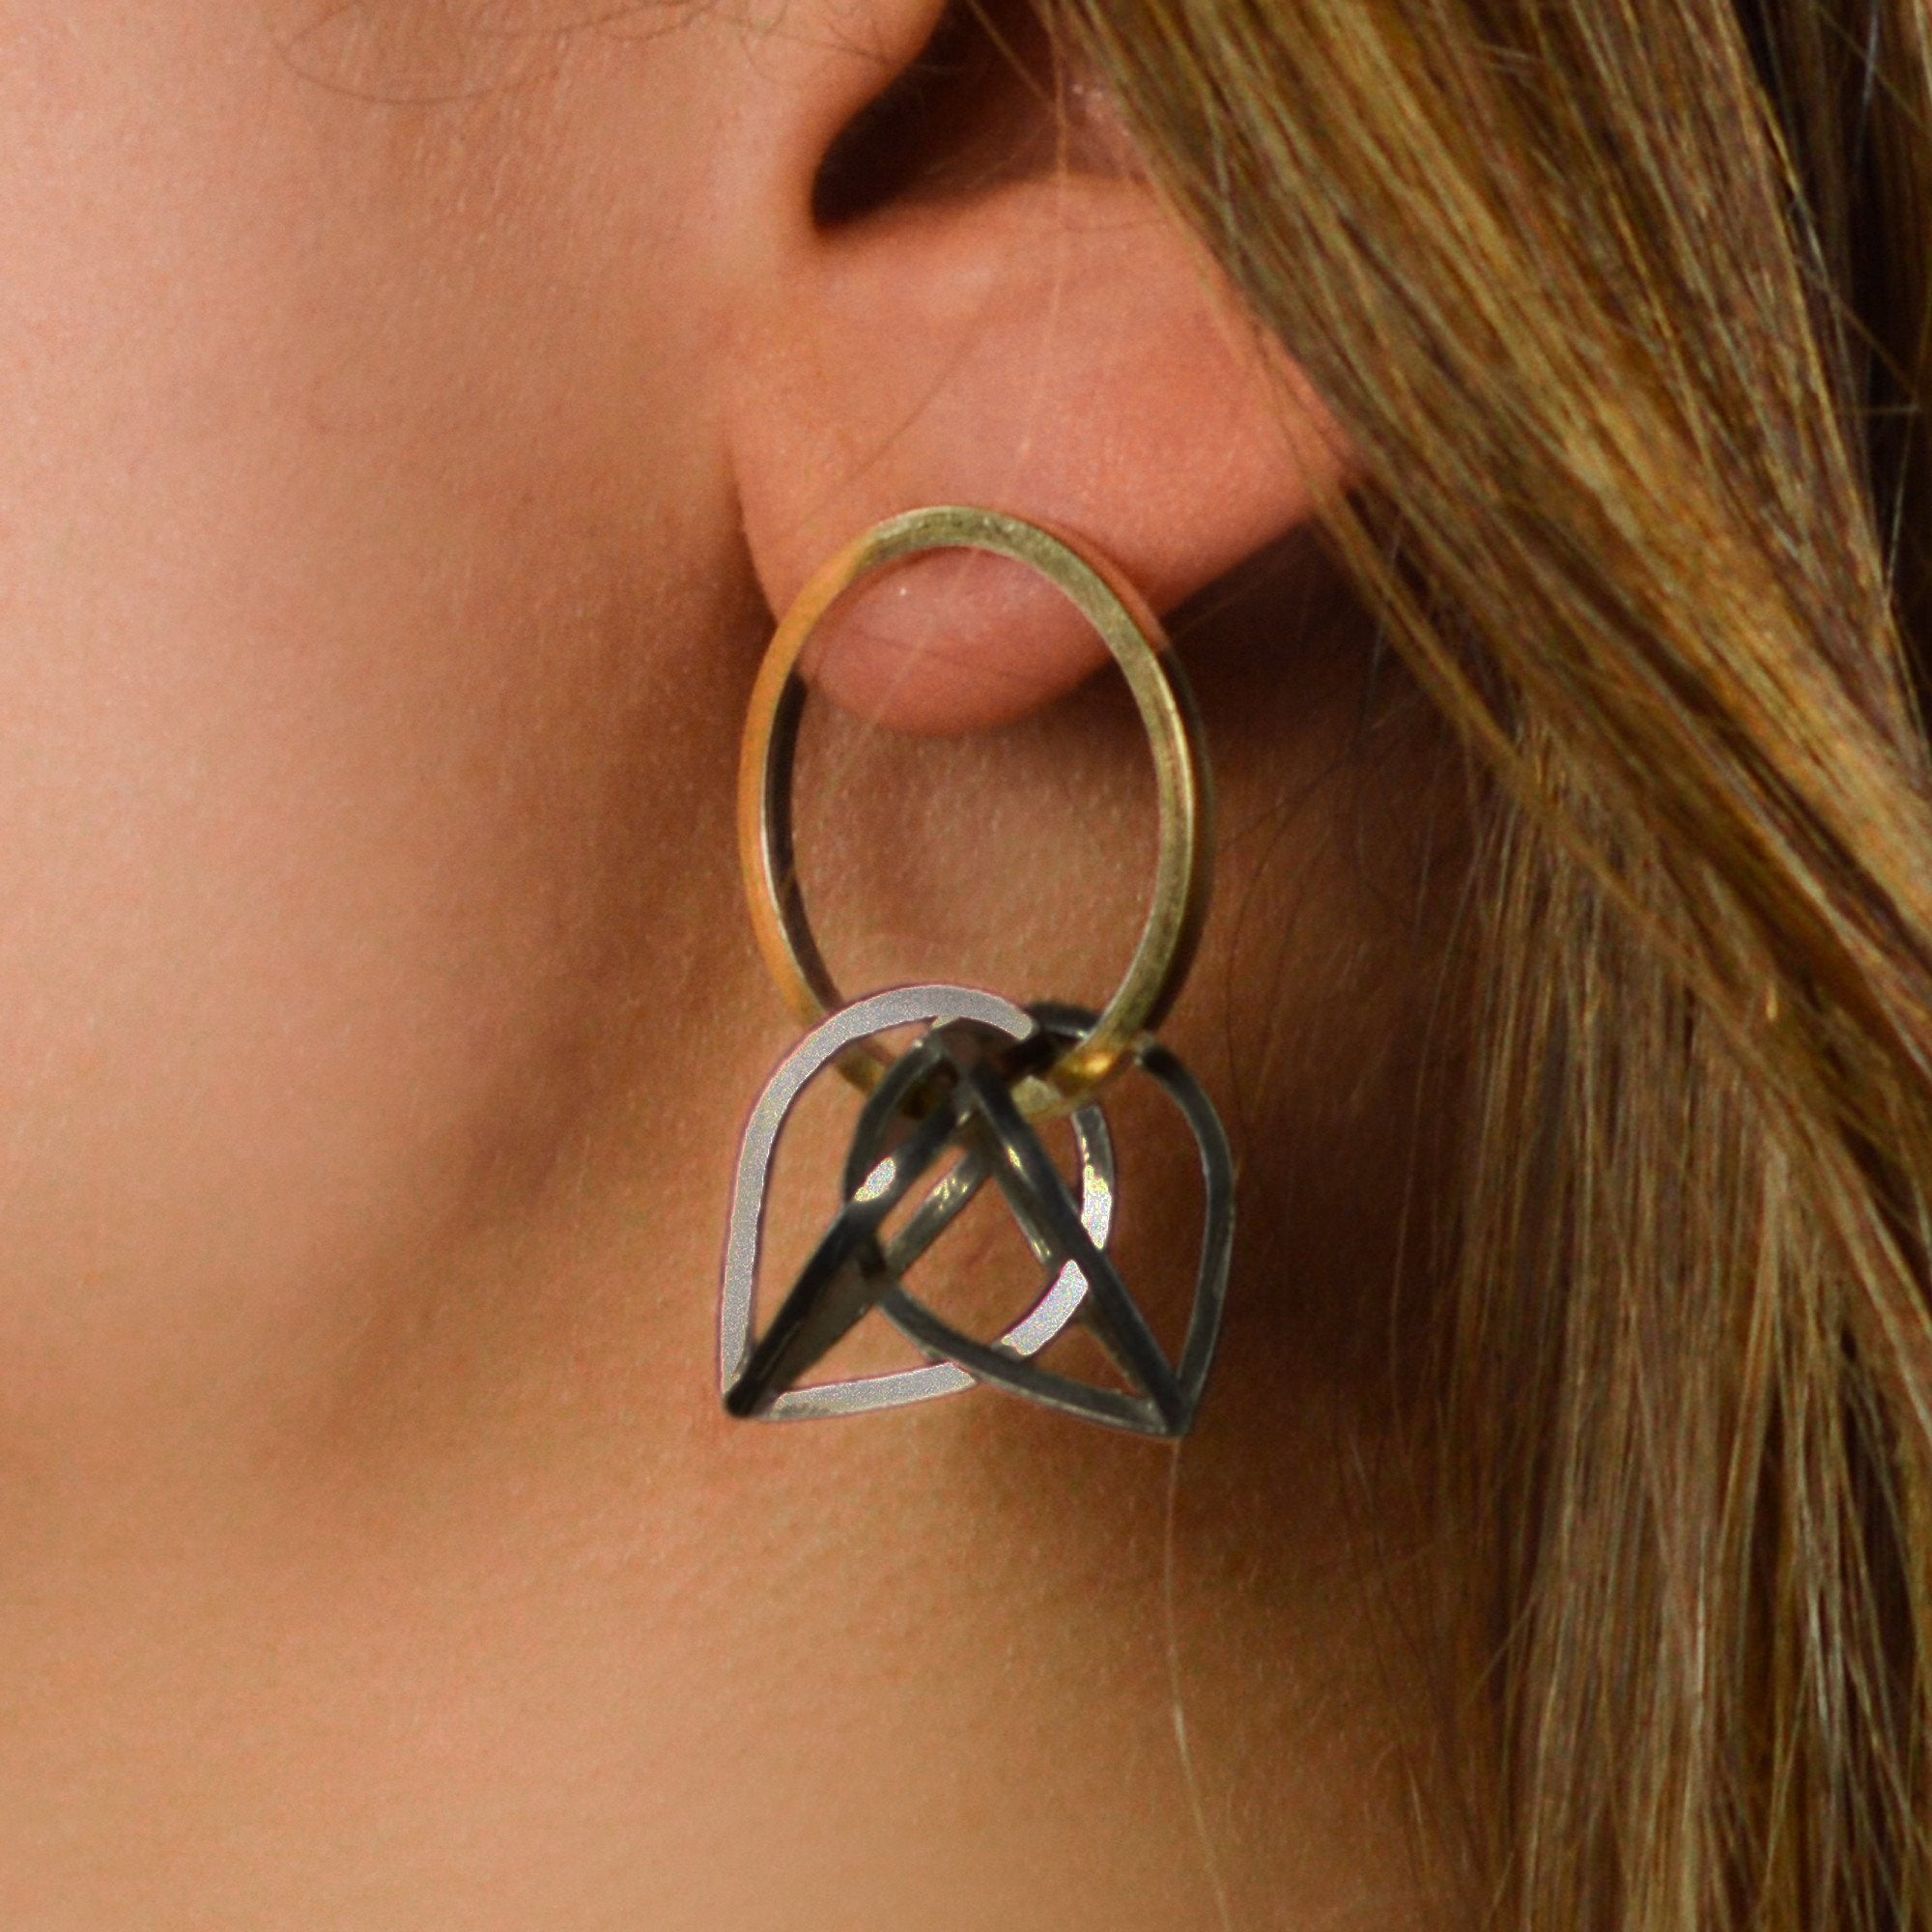 Parabolic Orbit Hoop Earrings in Sterling Silver, 22k Gold with dark patina